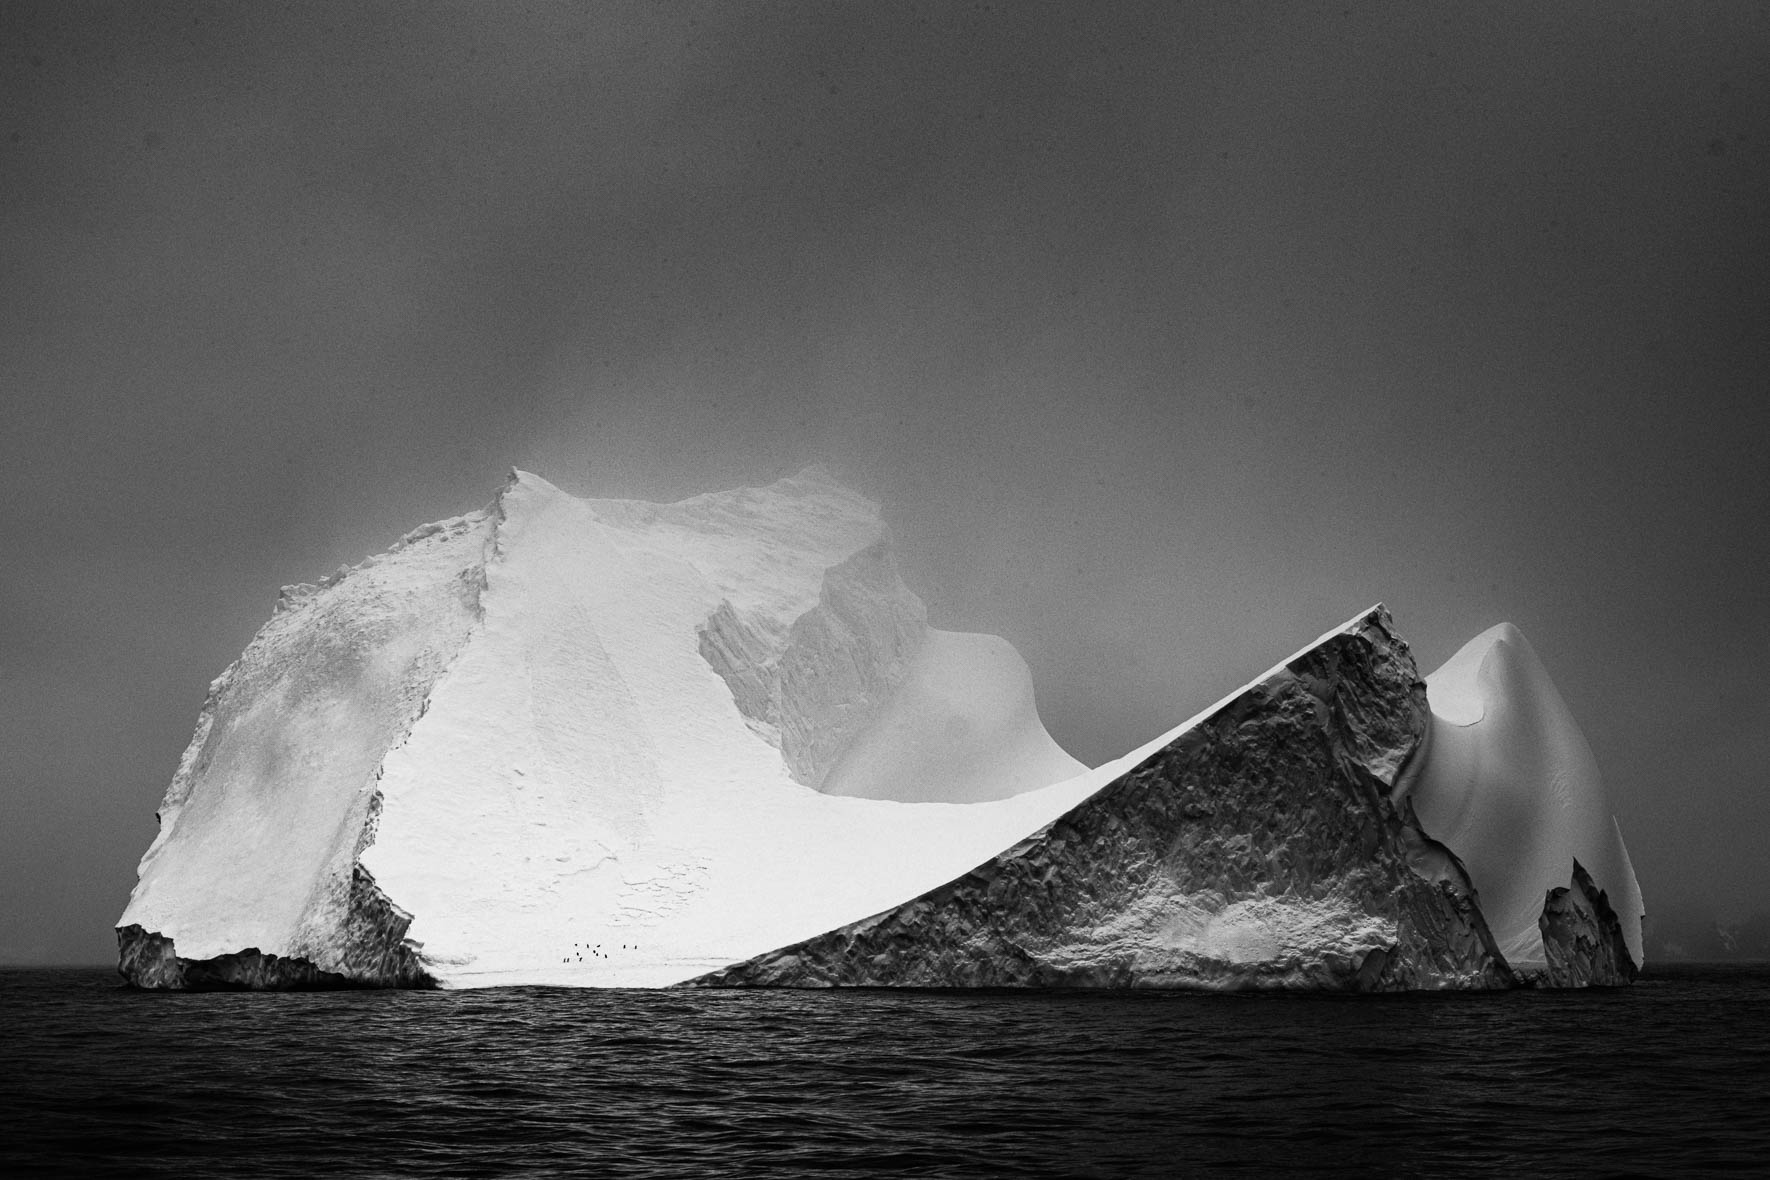 Tabular iceberg in Antarctica in black and white